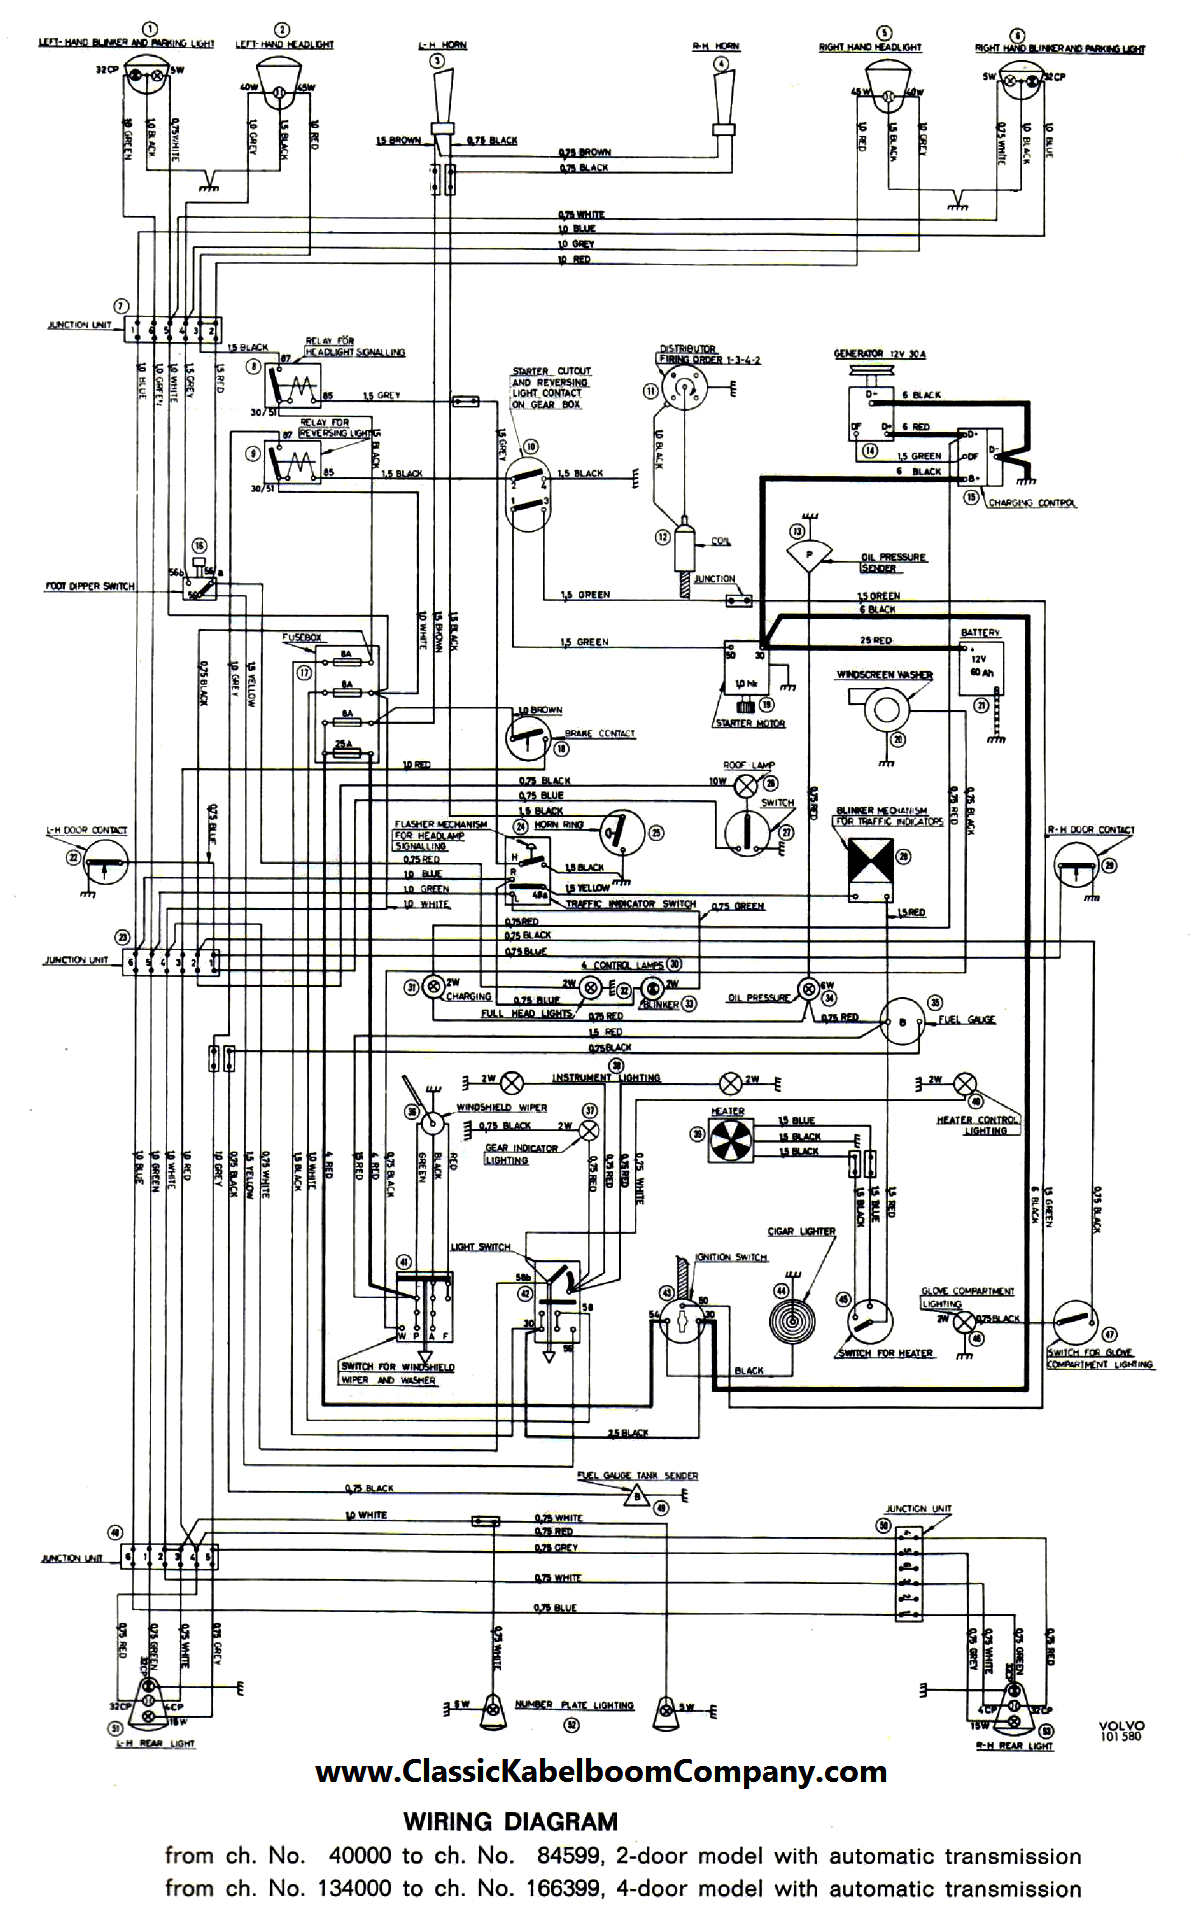 Onan Bf3cr Remote Start Wiring Diagram